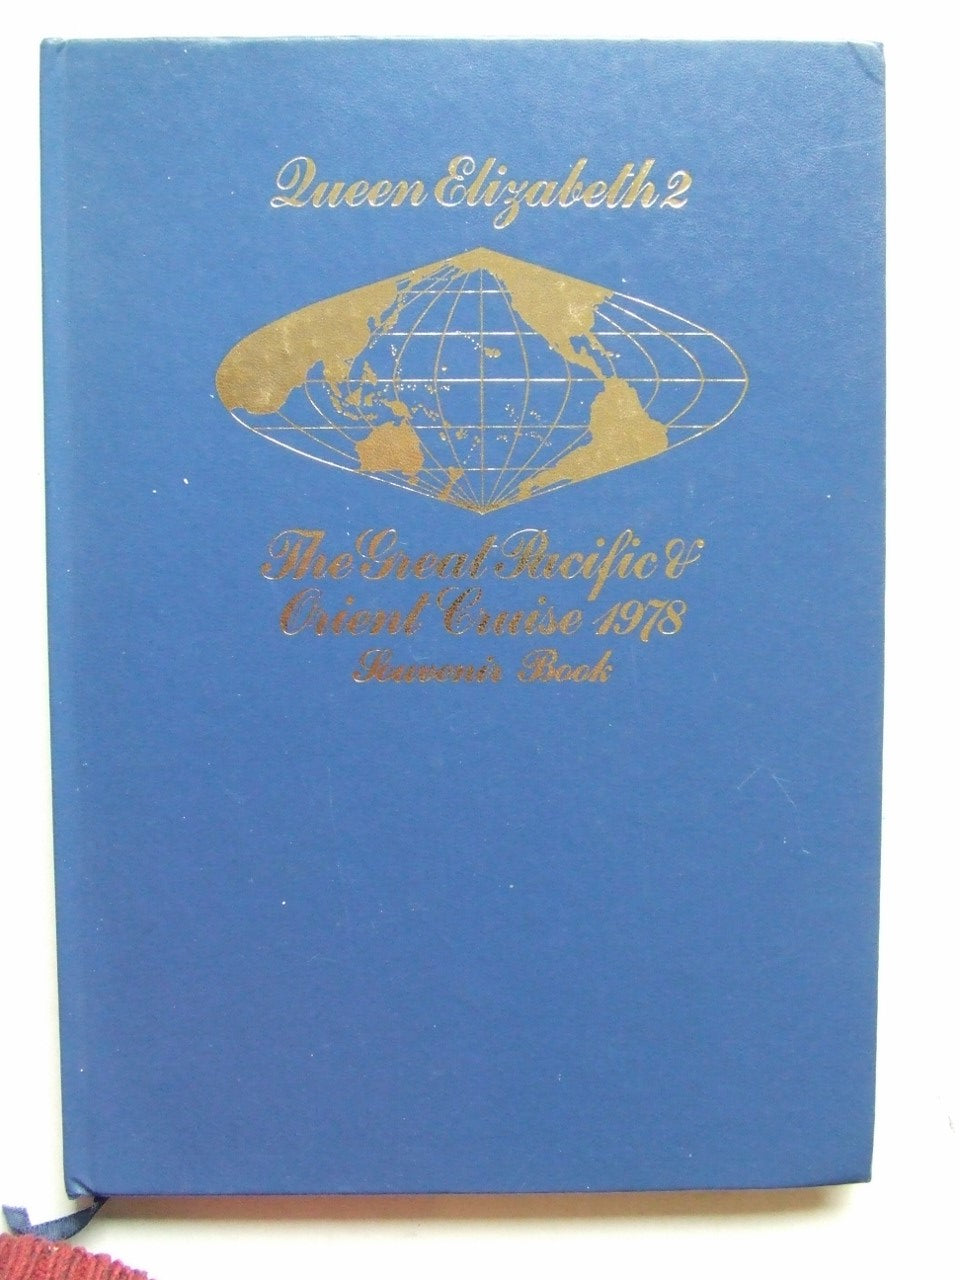 Queen Elizabeth 2, the great Pacific and Orient cruise 1978